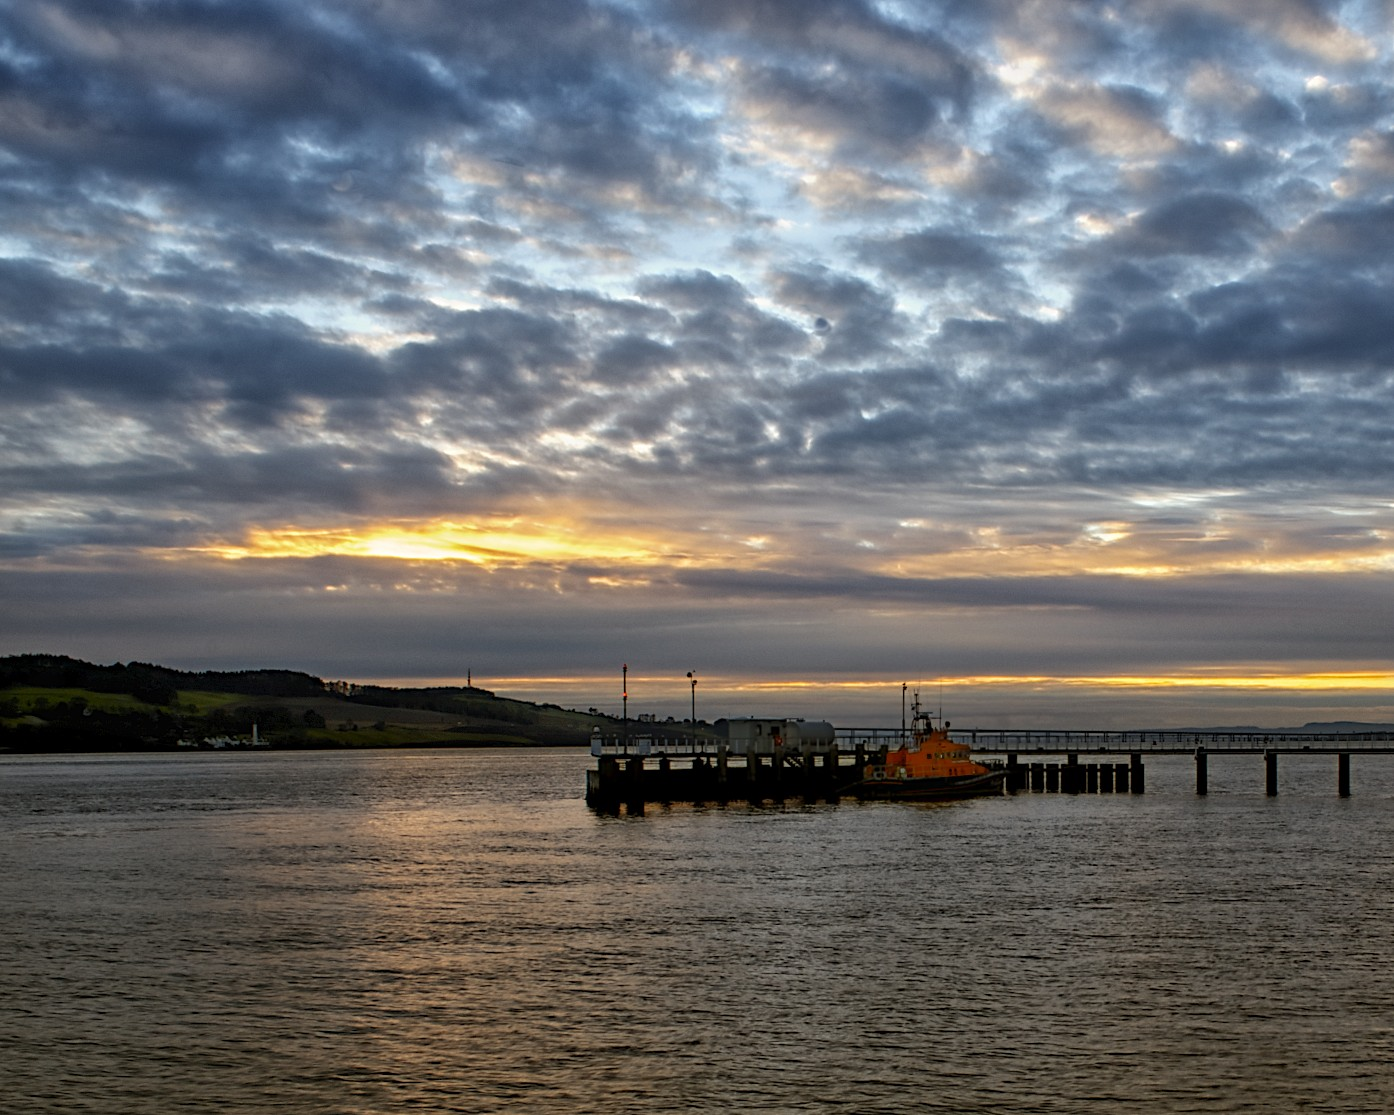 scottish life boat near dundee.jpg